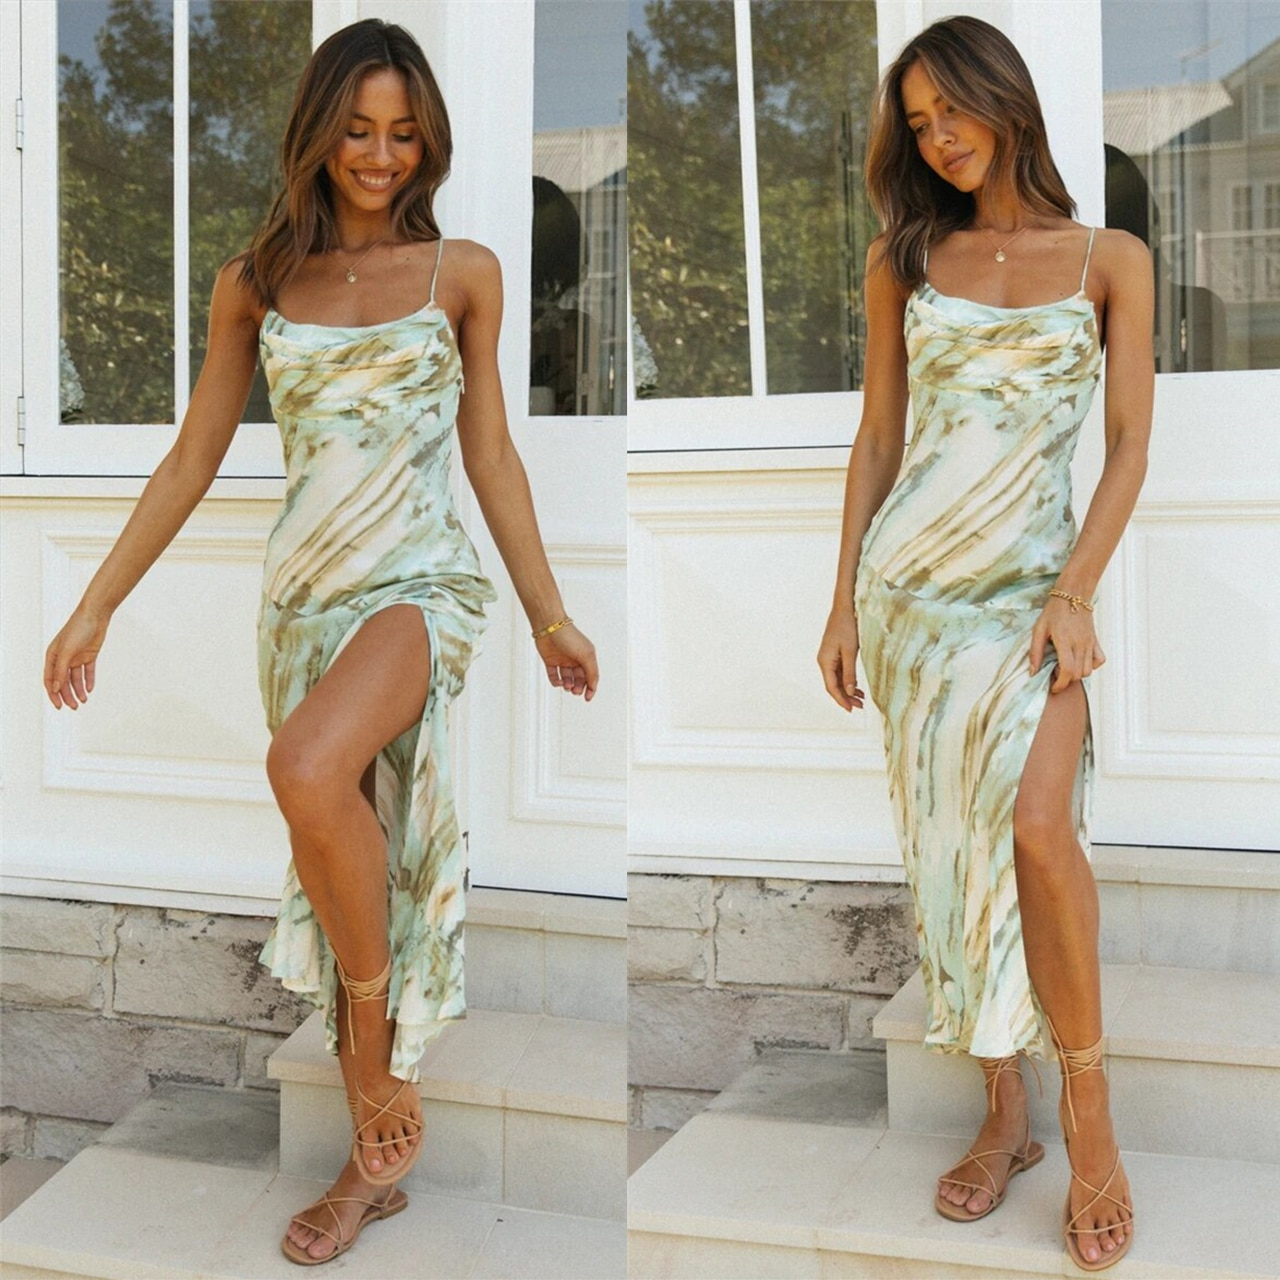 Sleeveless Ruched Bandage Tie dye Print Sexy Mini Dress Summer Women Fashion Streetwear Outfits Sundress Top Holiday Casual